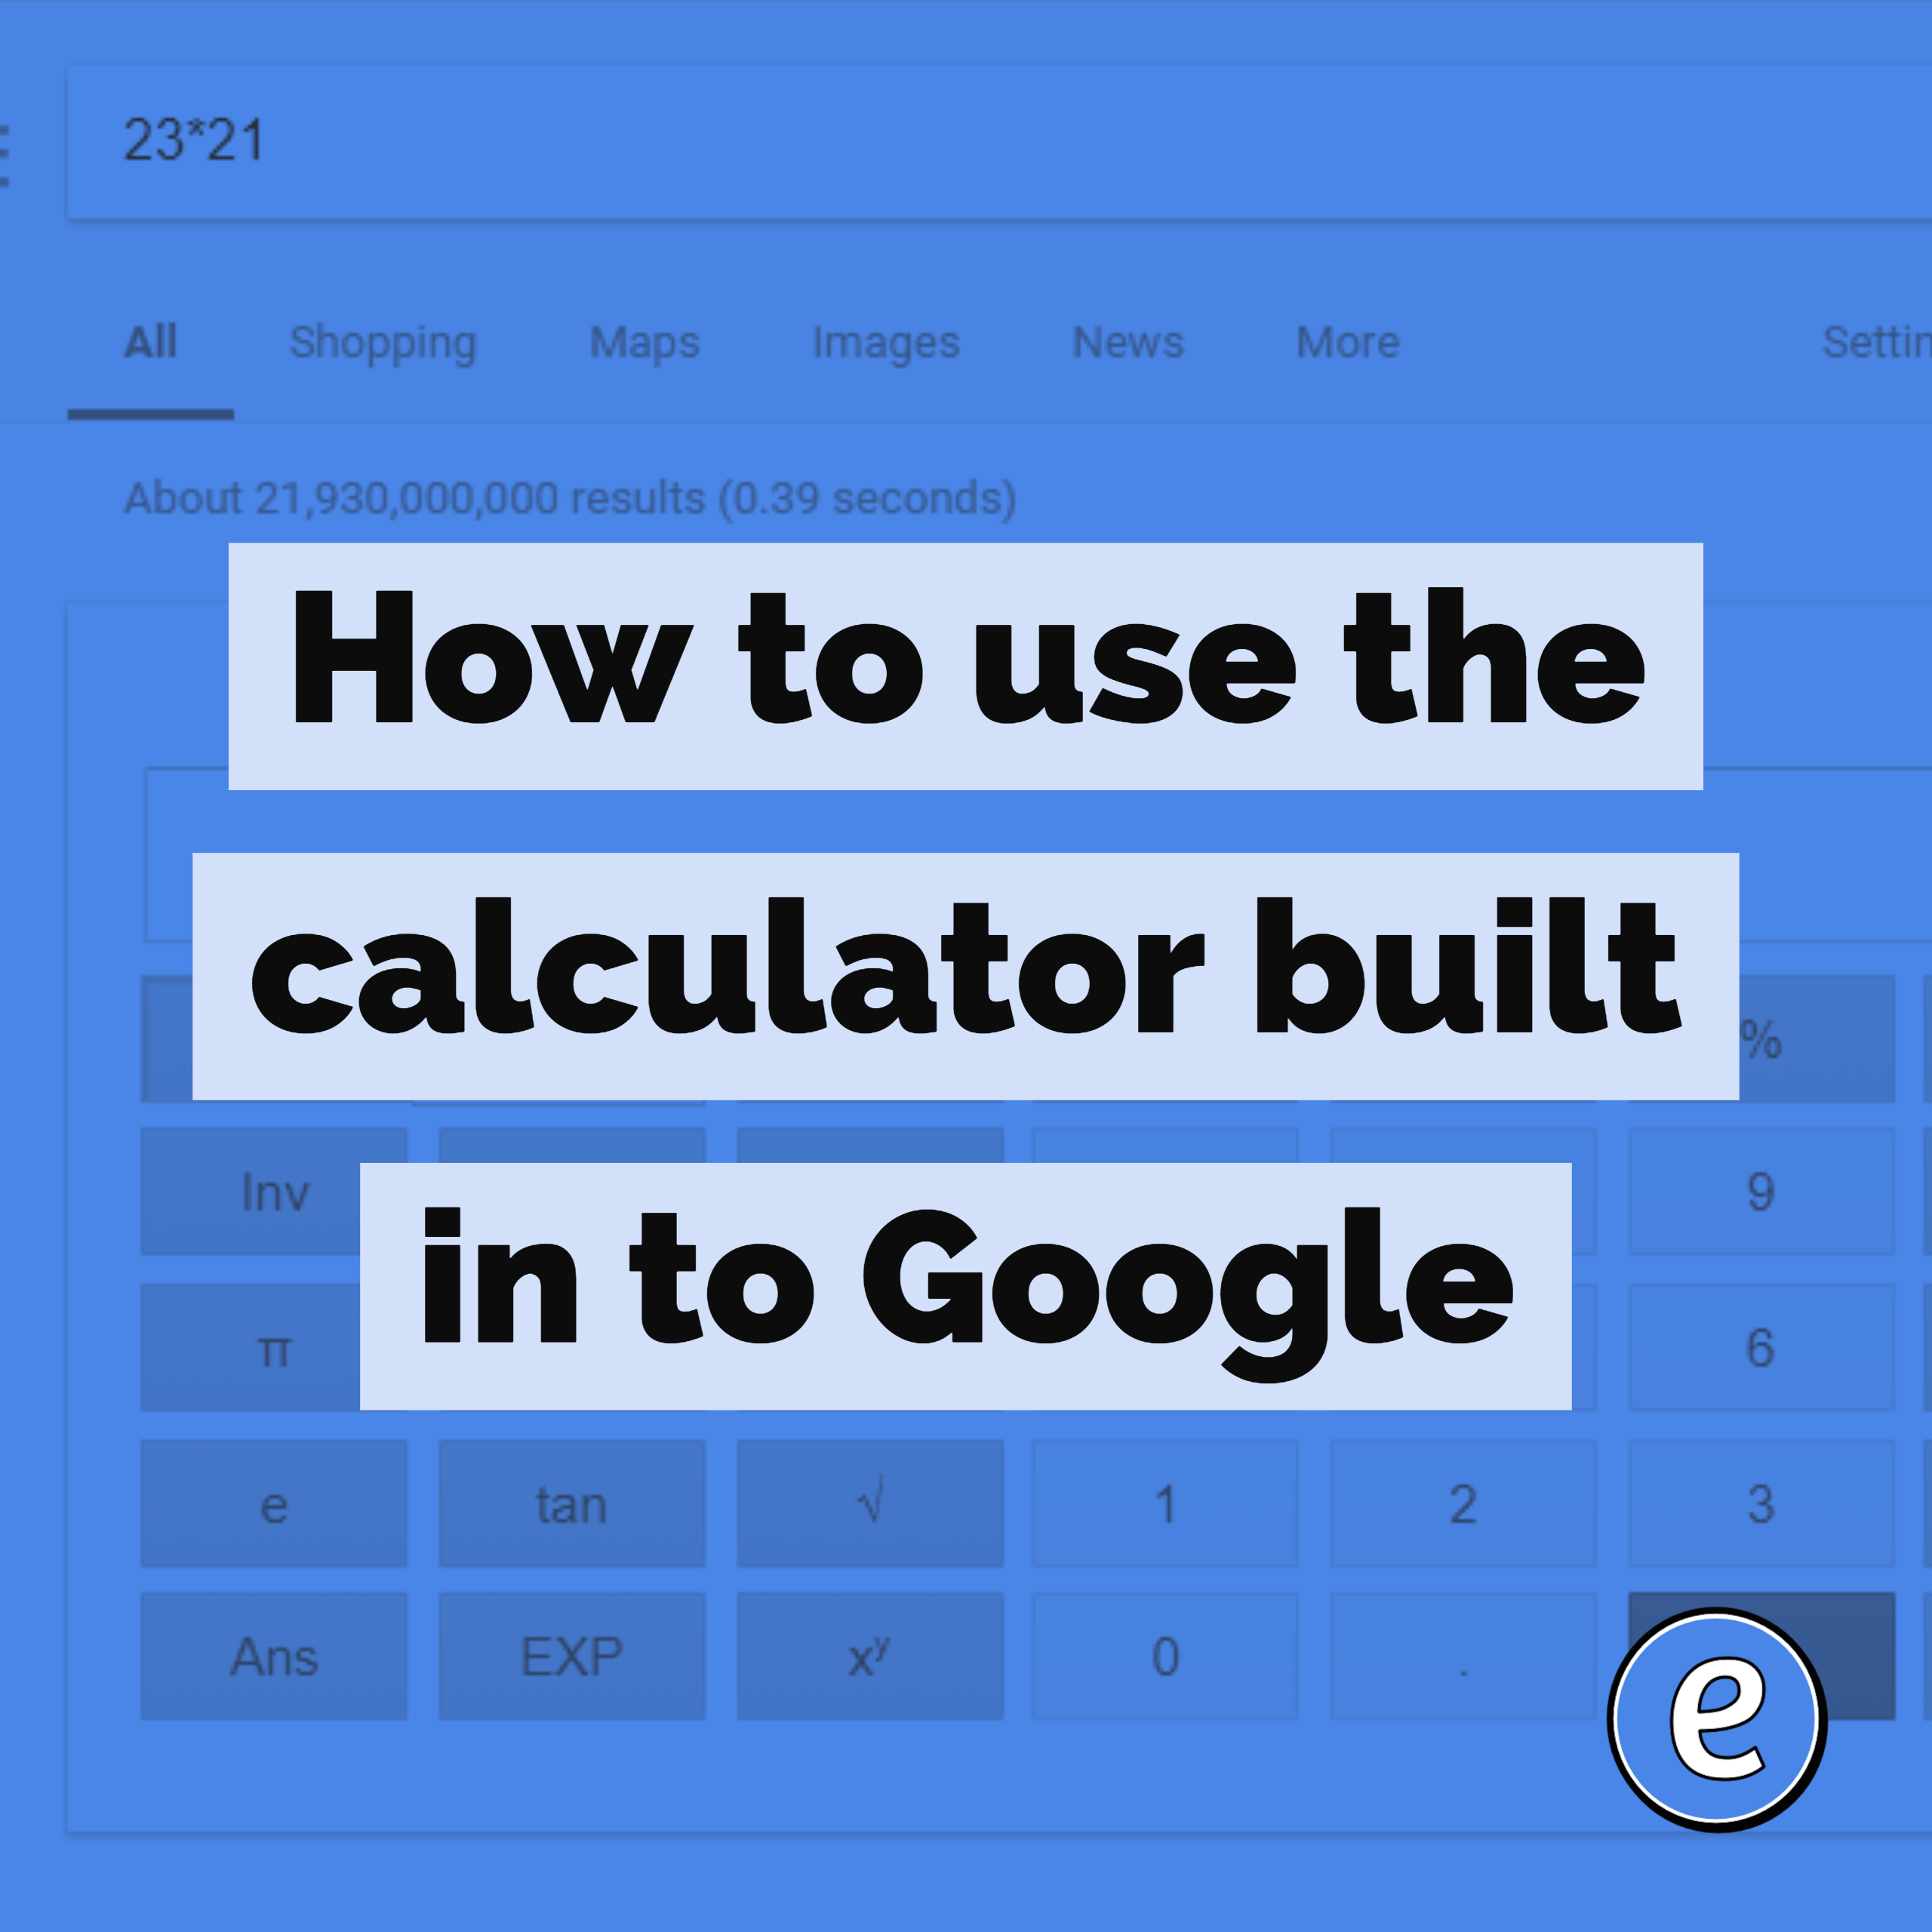 How to use the calculator, graphing calculator, and geometry calculator built in to Google